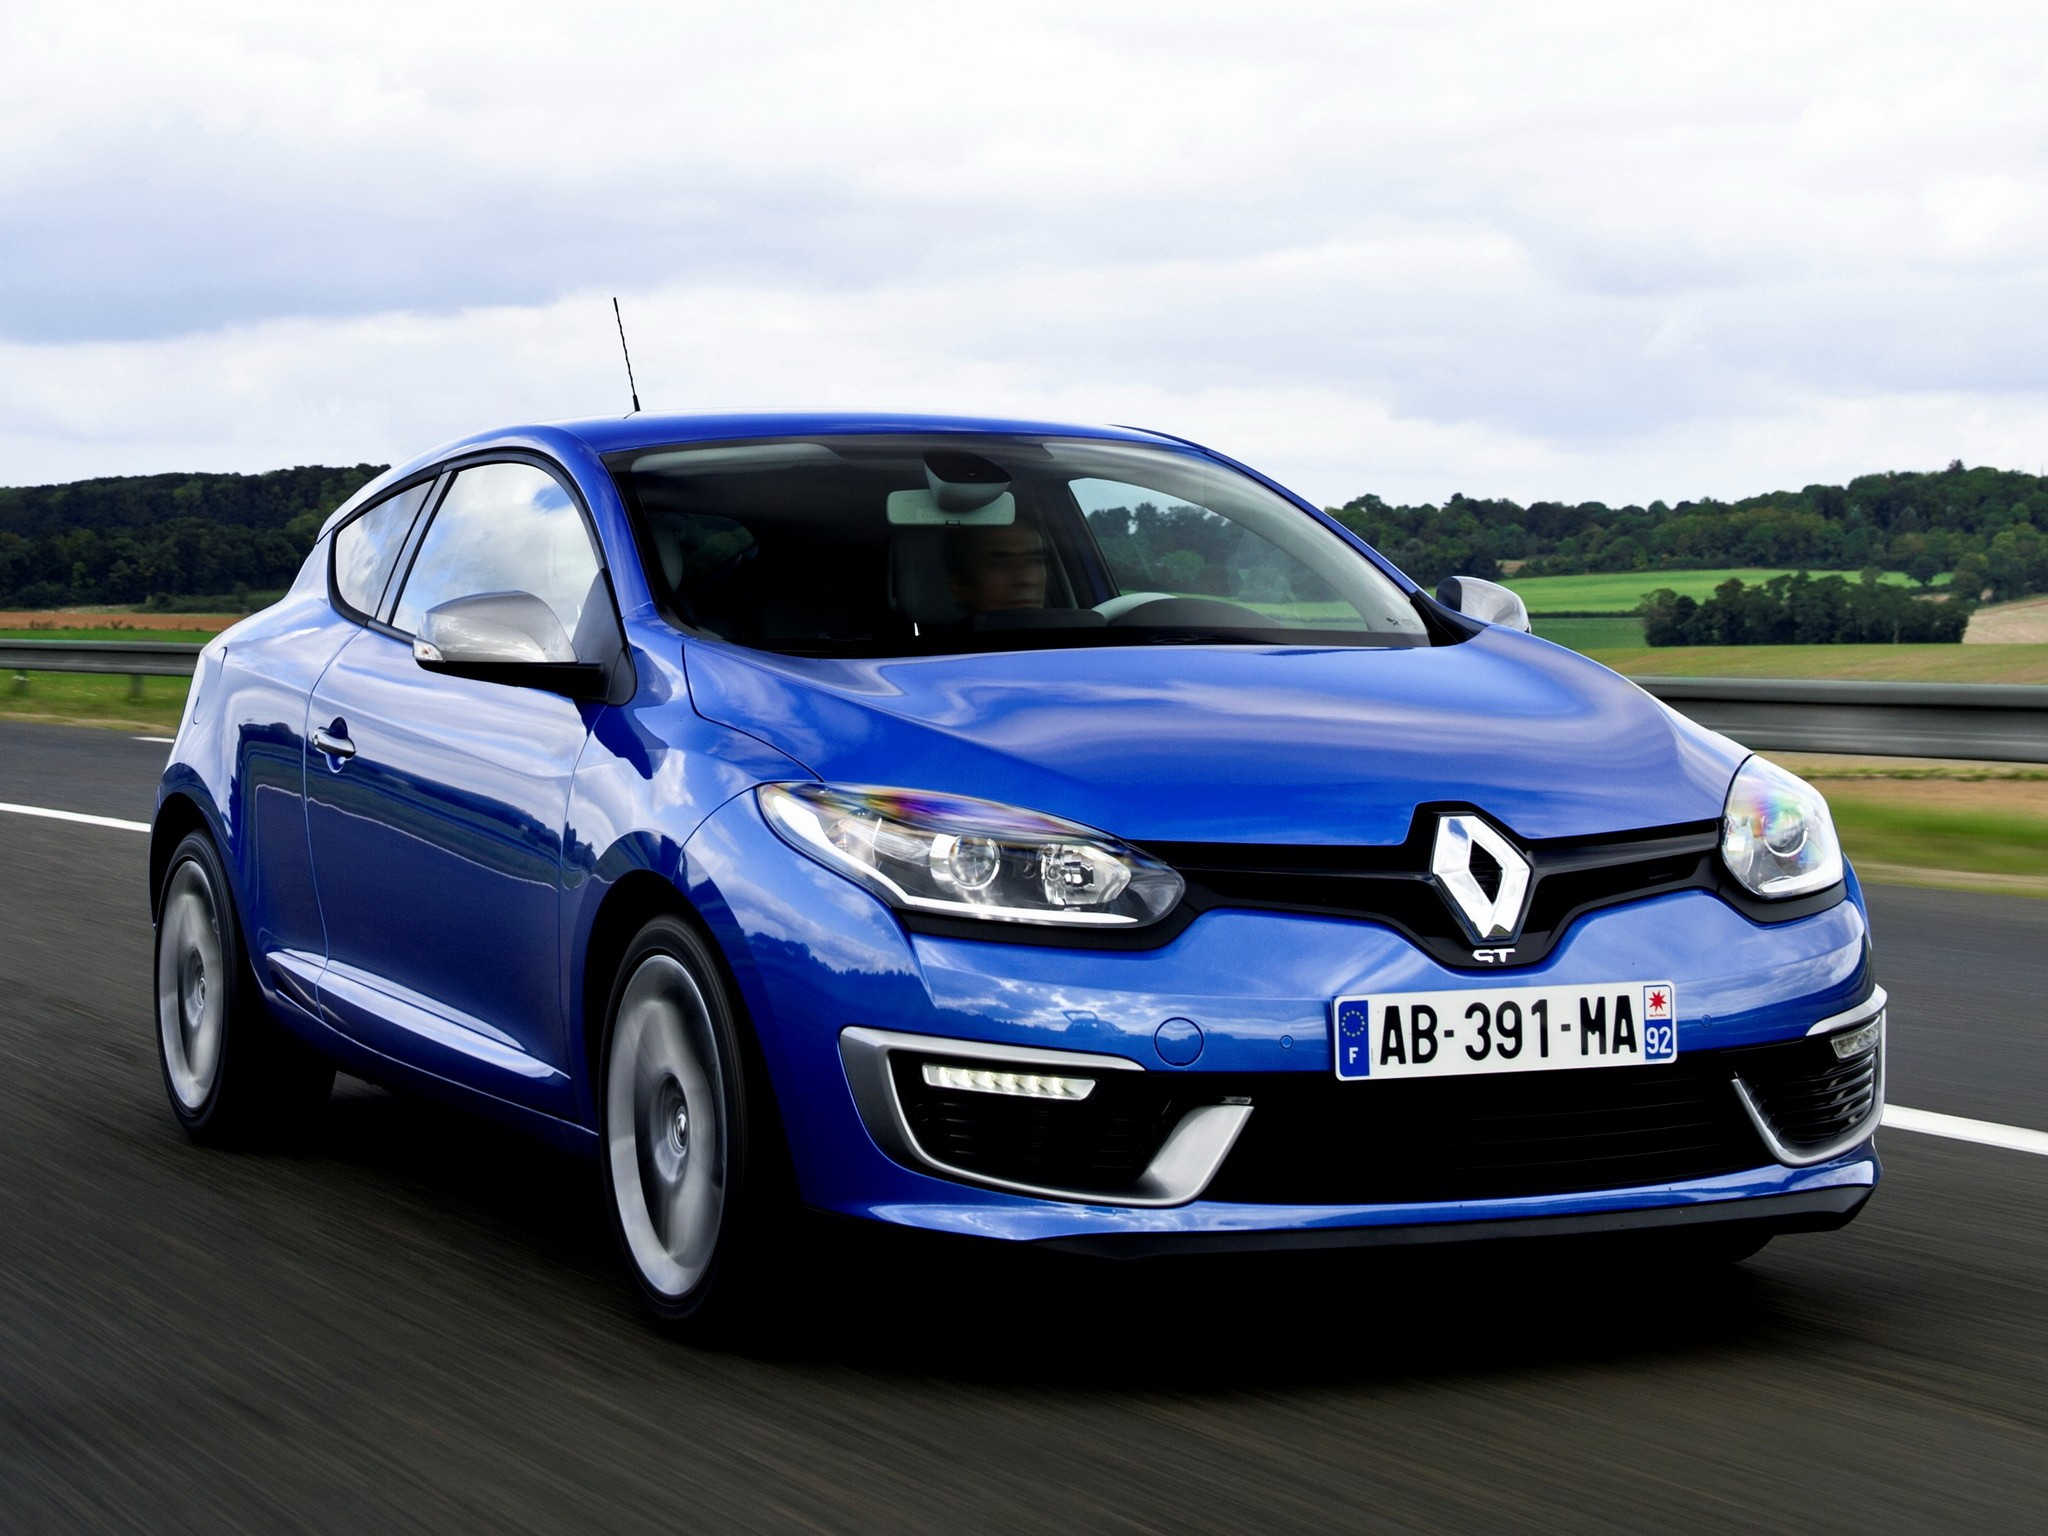 renault megane gt 3 doors specs photos 2013 2014 2015 autoevolution. Black Bedroom Furniture Sets. Home Design Ideas